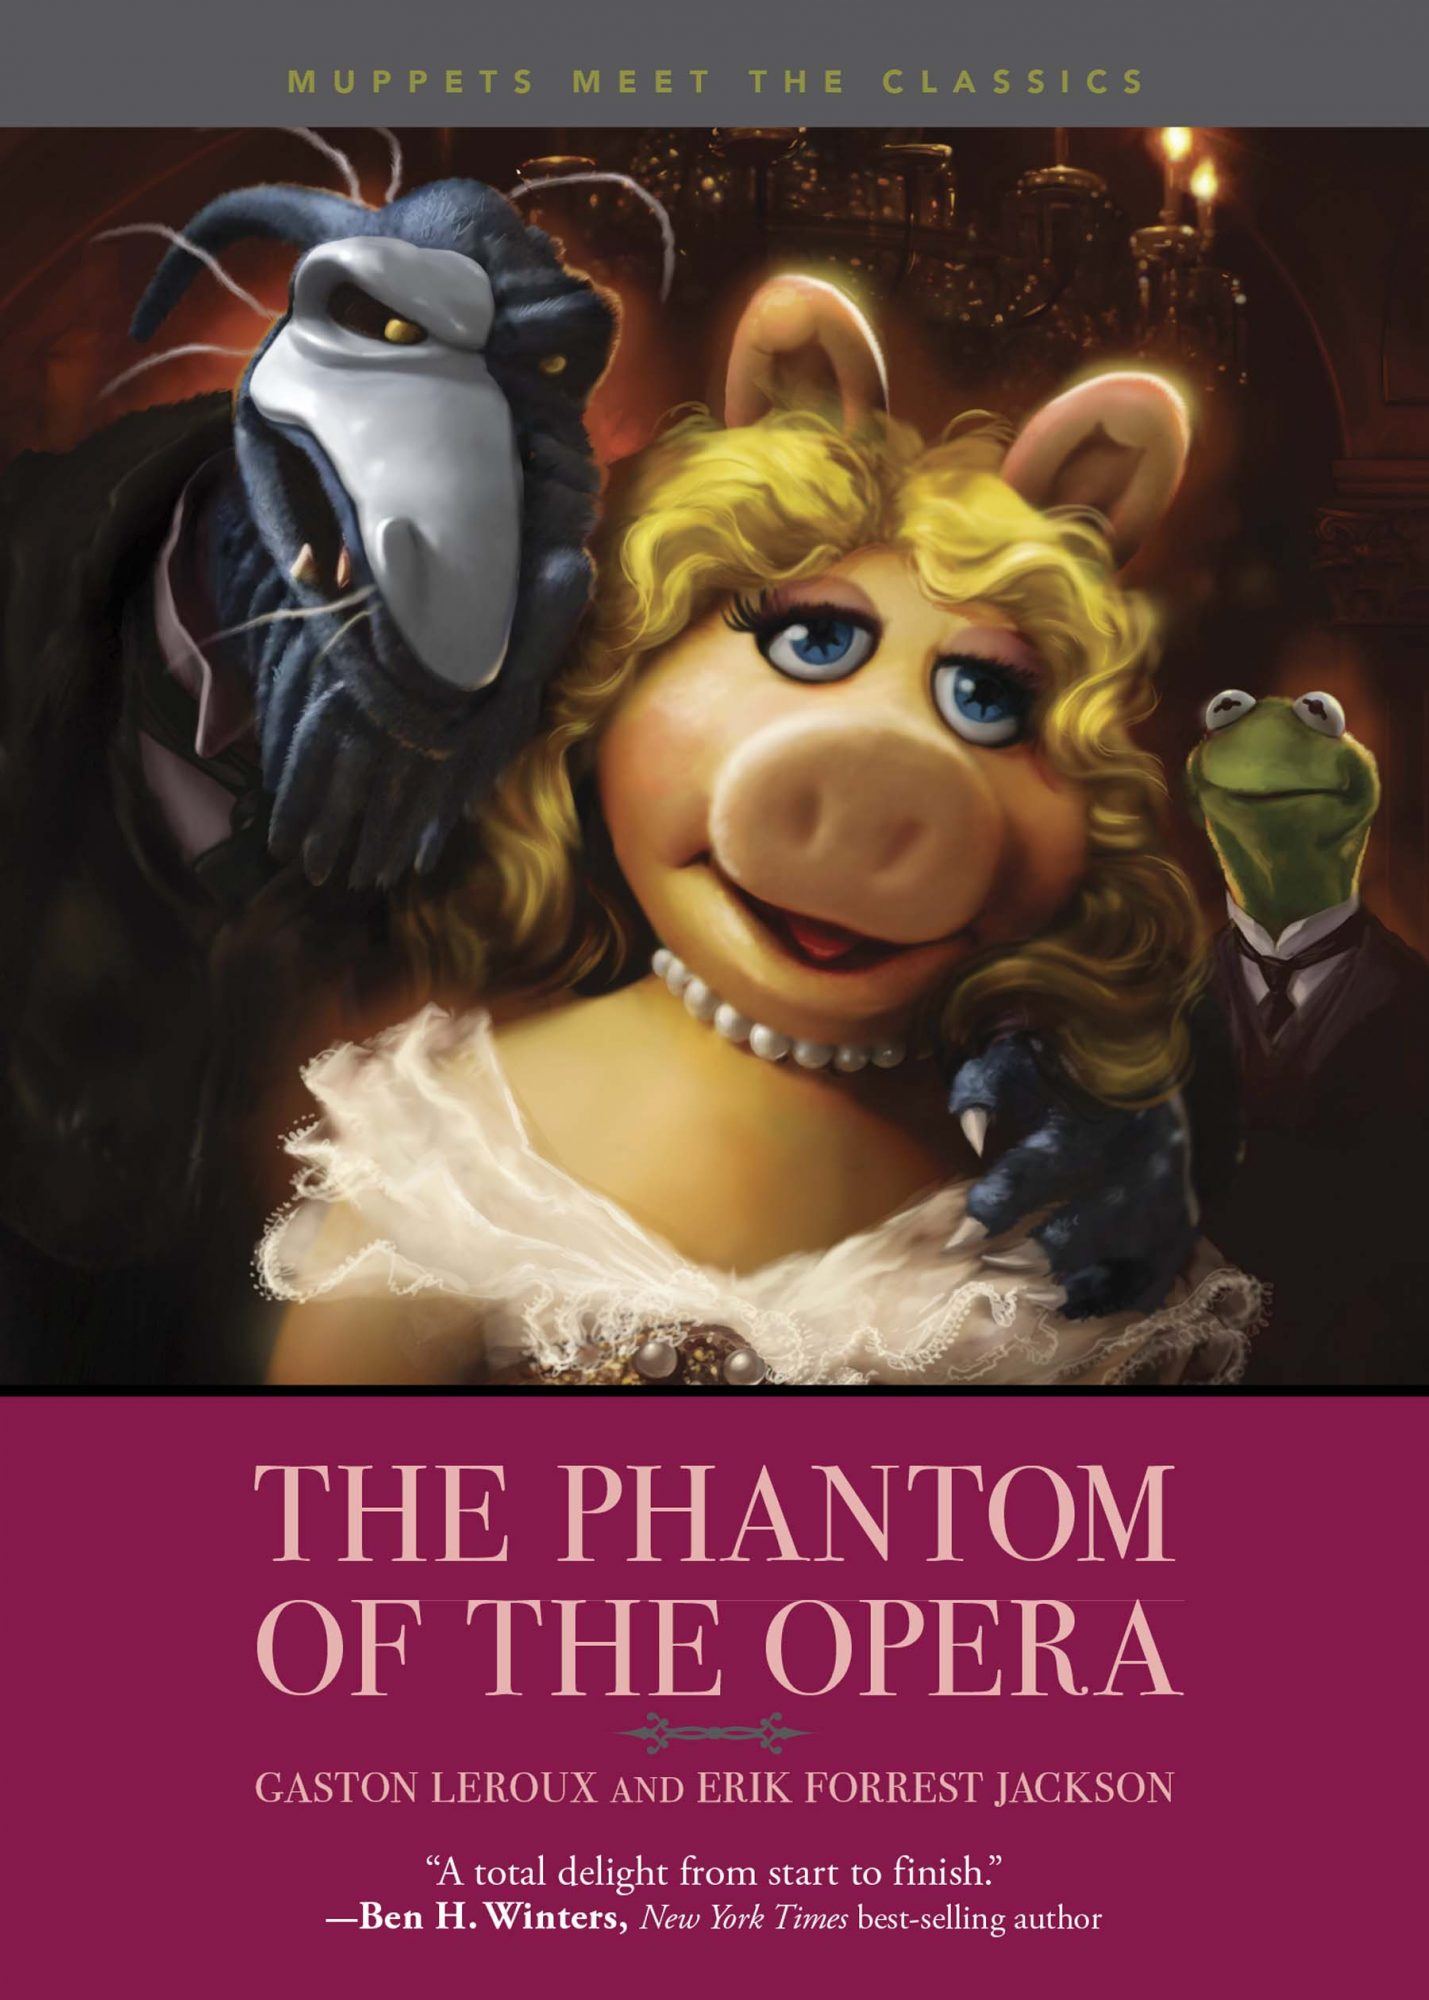 Erik Forrest Jackson, Muppets Meet the Classics: The Phantom of the Opera